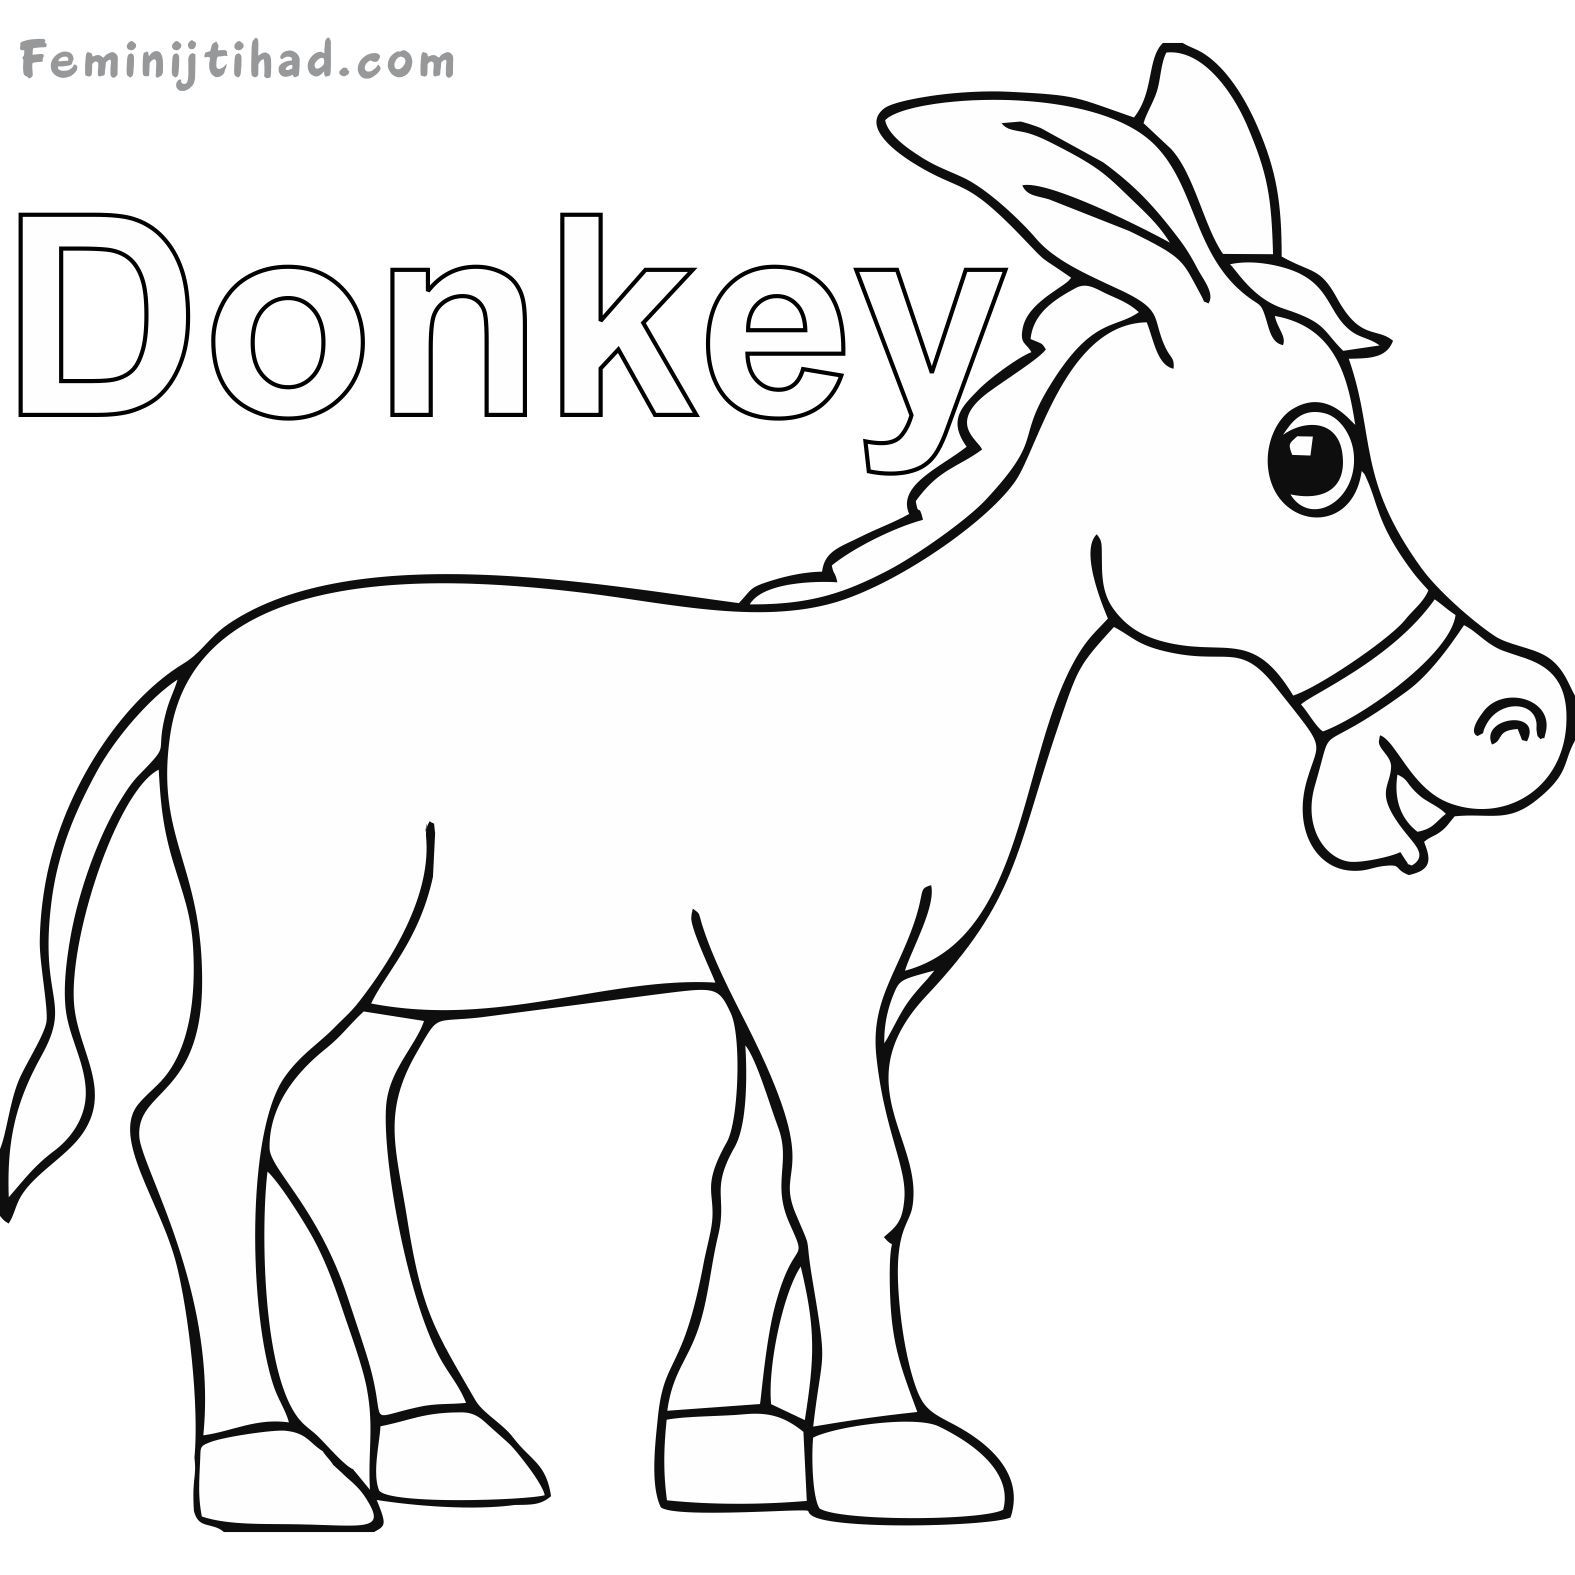 donkey colouring pages printable donkey coloring pages coloring pages coloring pages donkey colouring